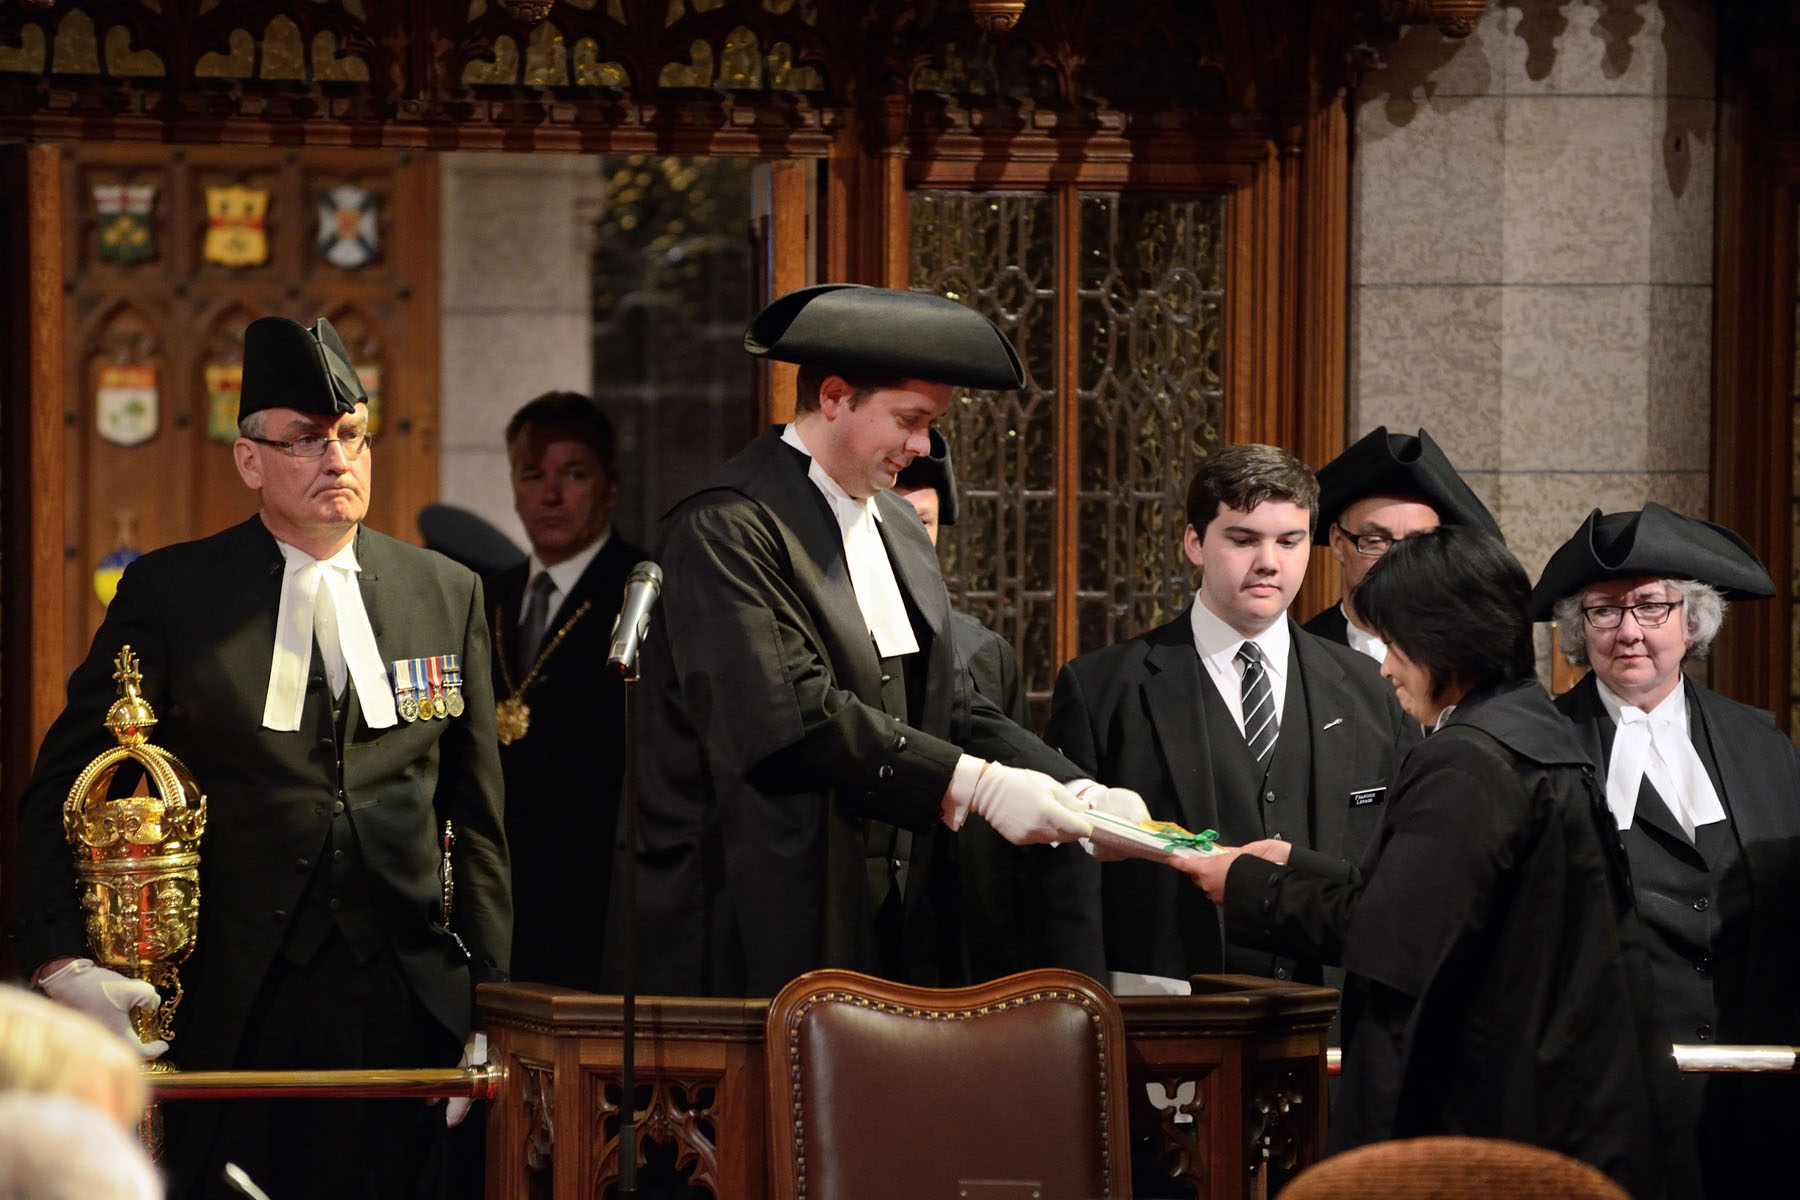 By tradition, Royal Assent is accorded in the Senate Chamber in the presence of members of the House and Senate.